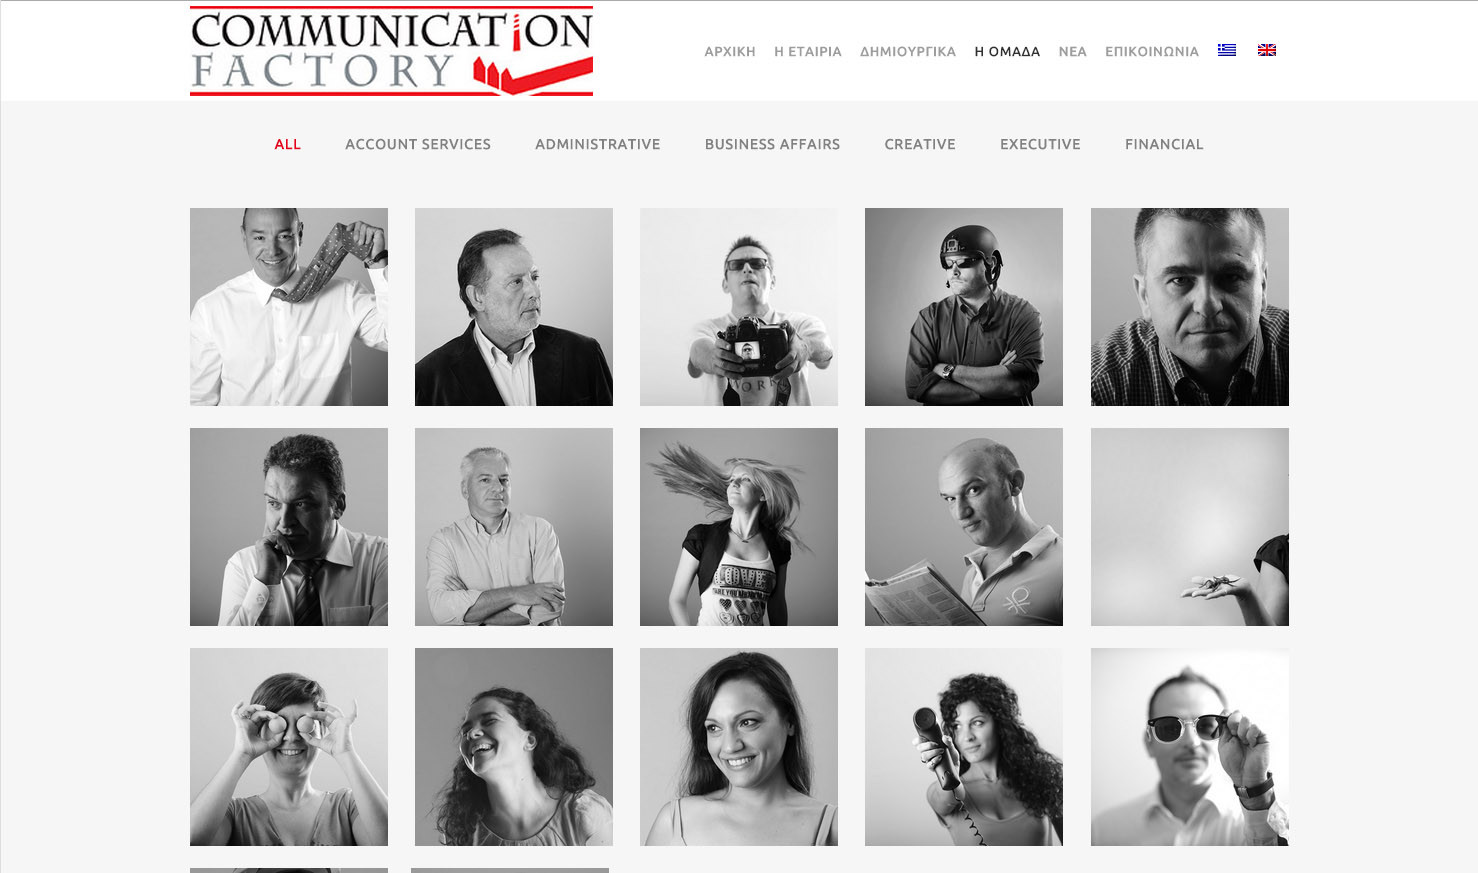 Communication Factory website team